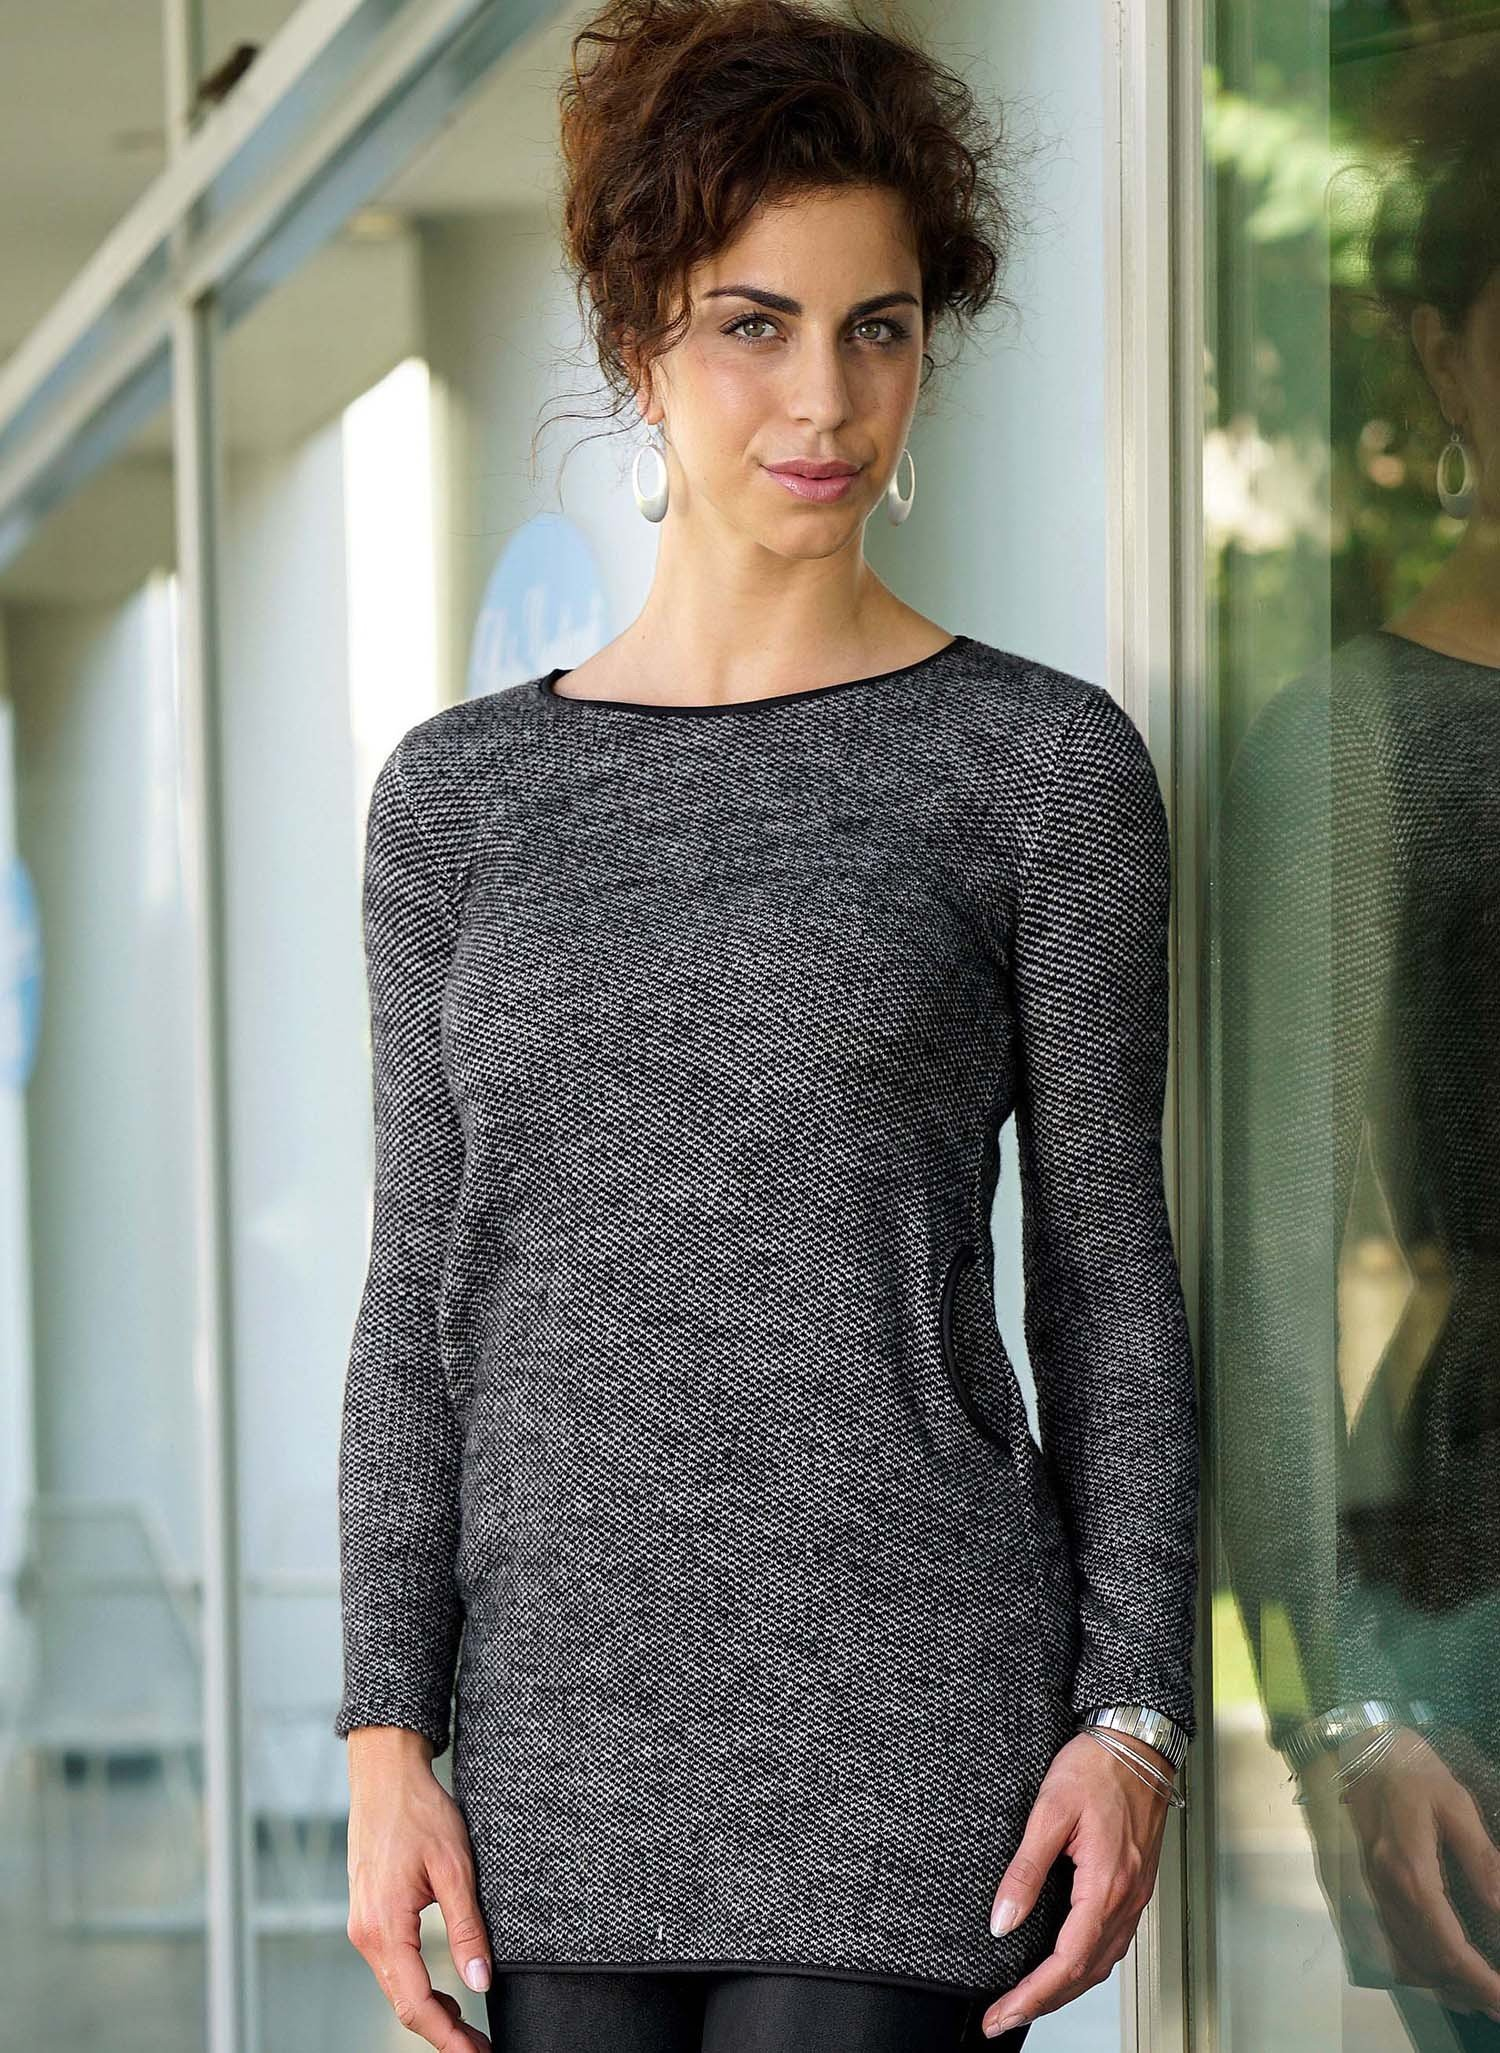 D-Longtop/Kleid,  anthracite XL 013 - 1 - Ronja.ch